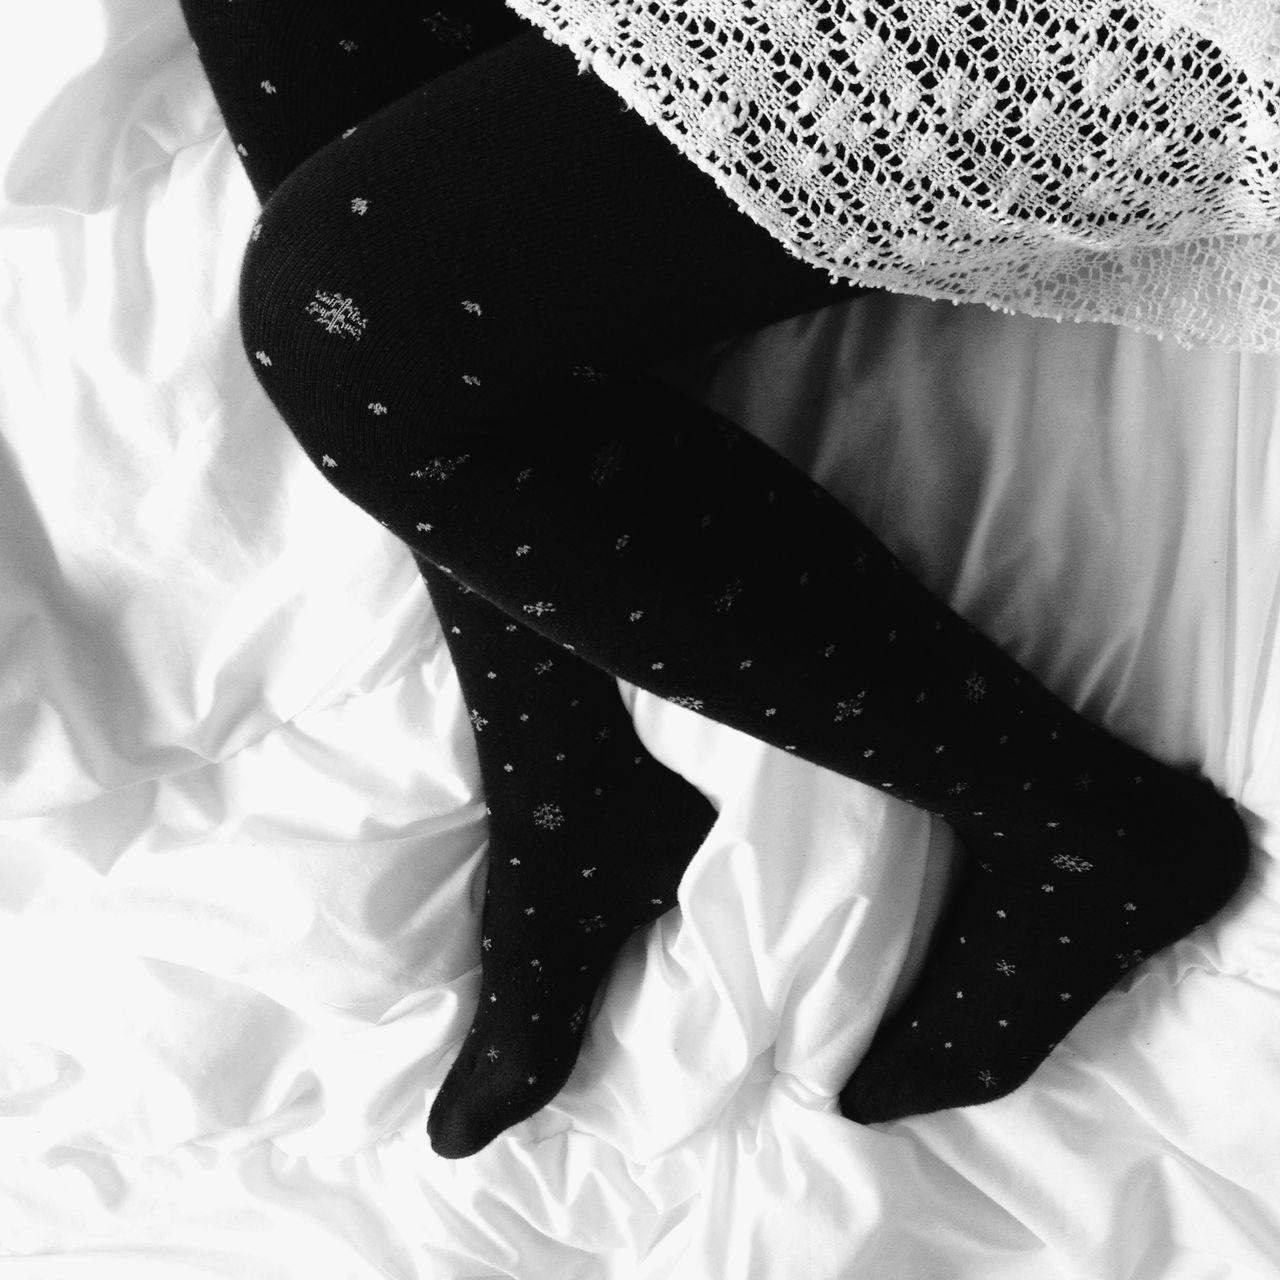 Everyday Joy Bedtime Relaxing Blackandwhite TK Maxx Socksie